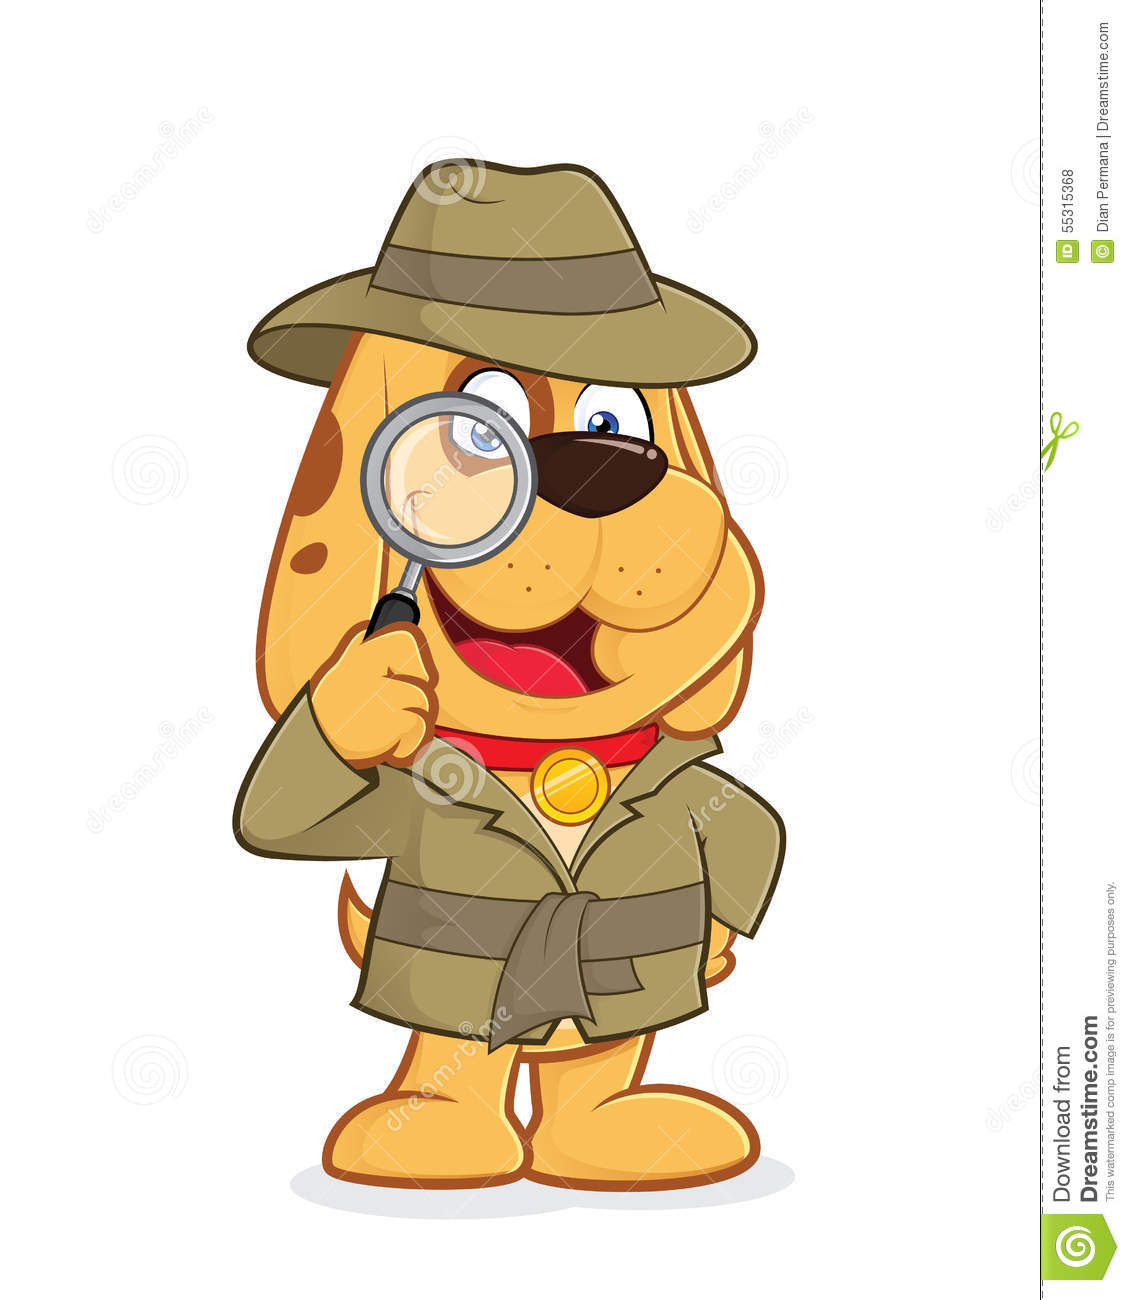 hight resolution of clipart picture of a detective dog cartoon character